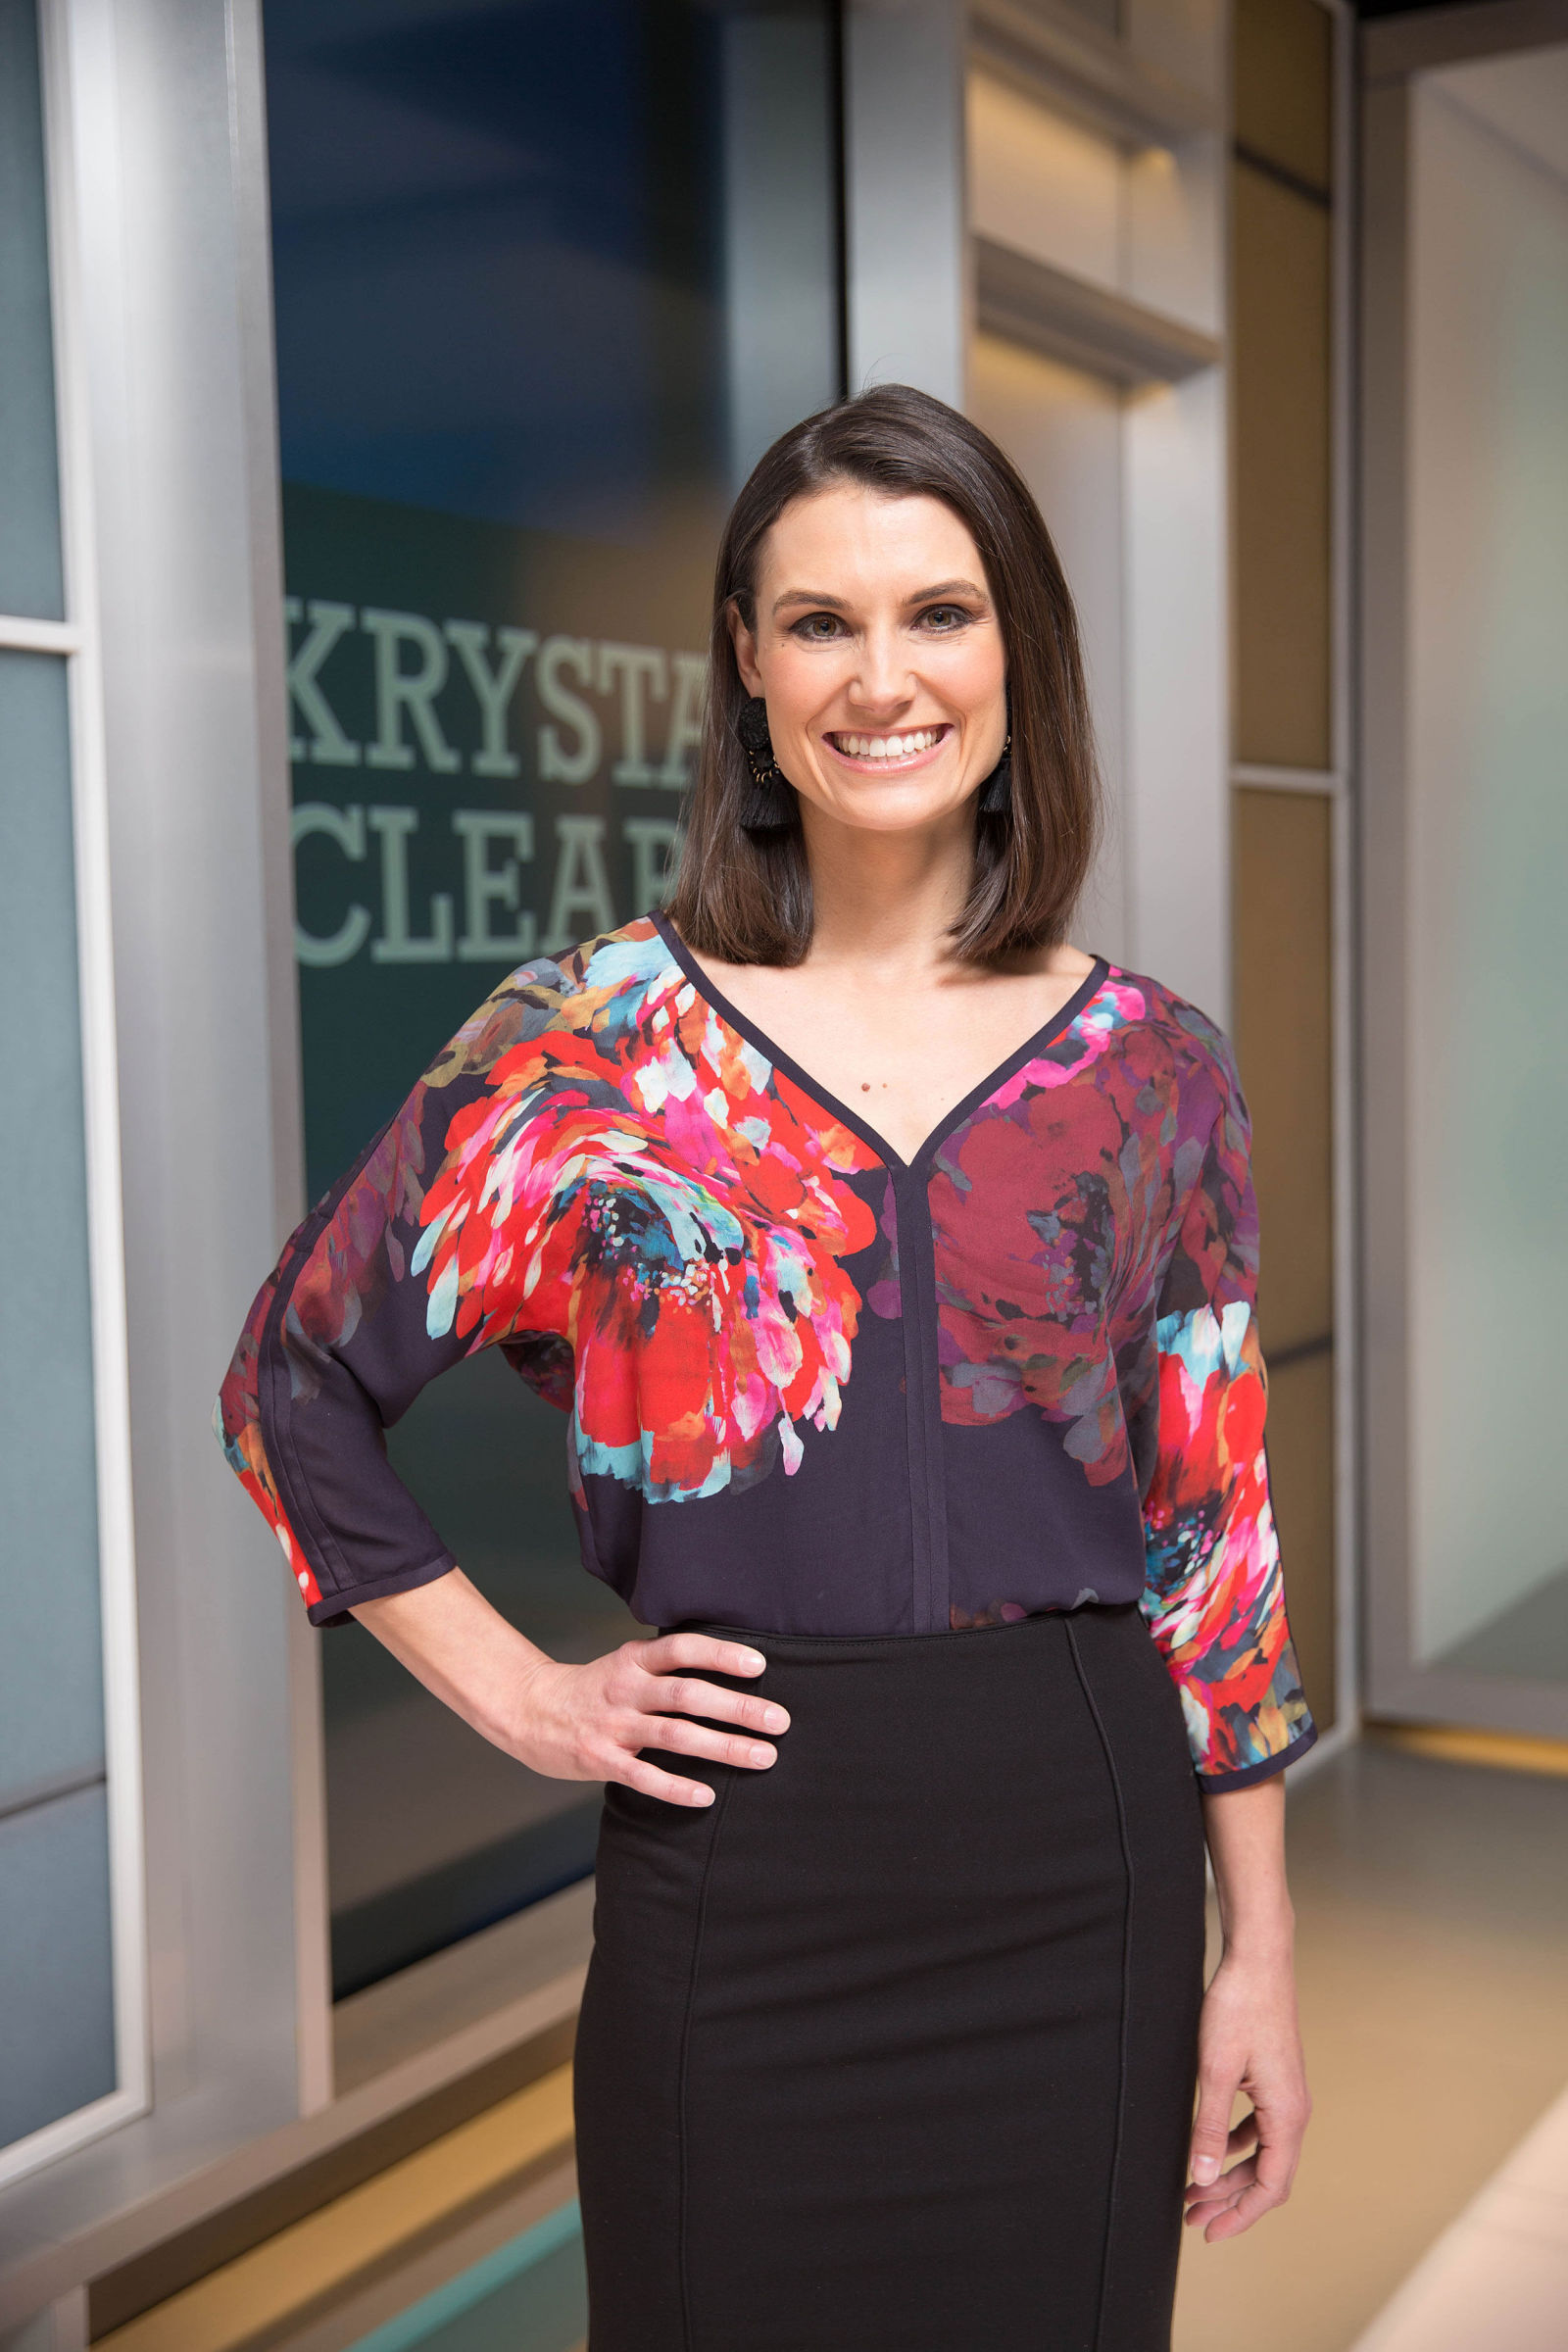 MSNBCs The Cycle which ran from June 2012 to July 2015 was a live onehour ensemble opinion show that featured conservative commentator Abby Huntsman author and pundit Touré The